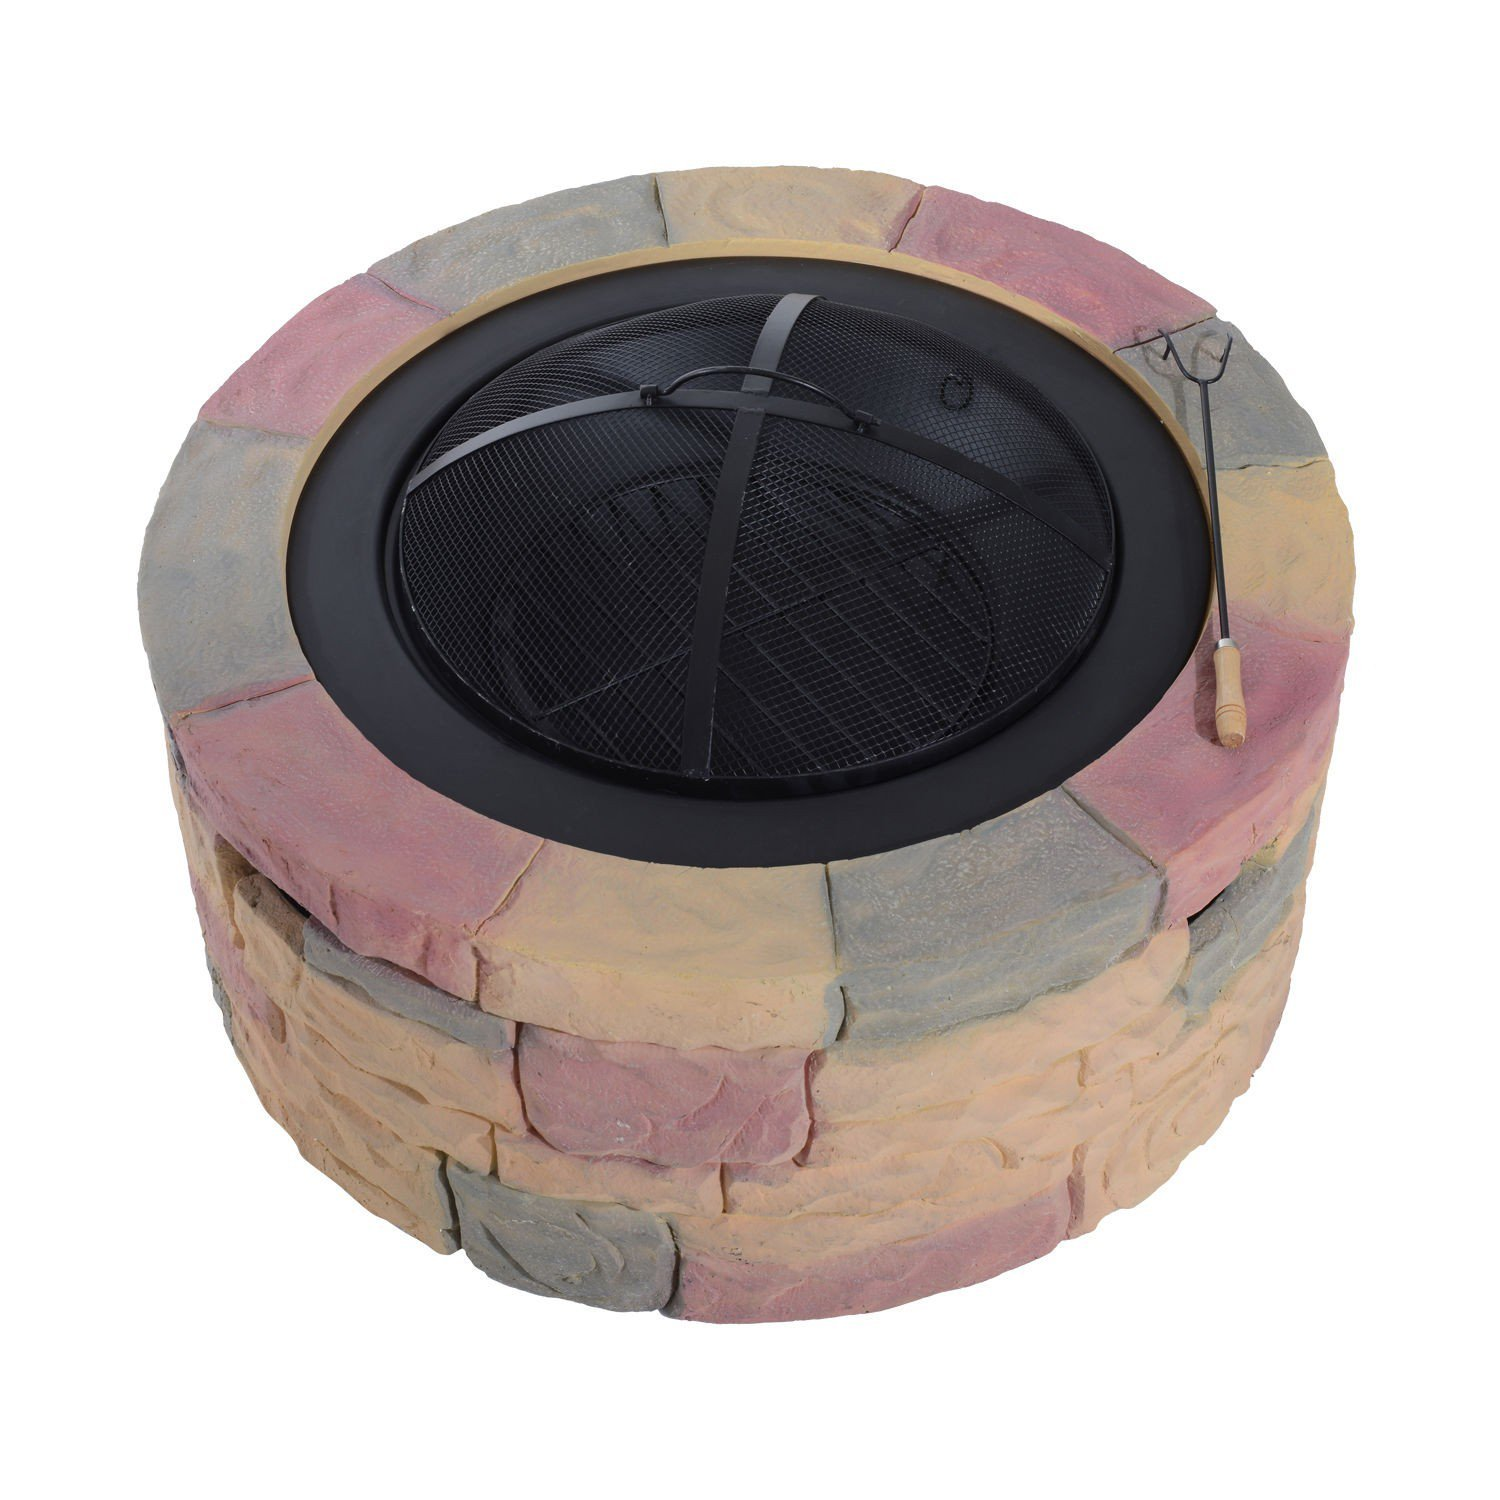 New Firepit 35' Round Stone Design Patio Backyard Outdoor Fire Pit with ebook